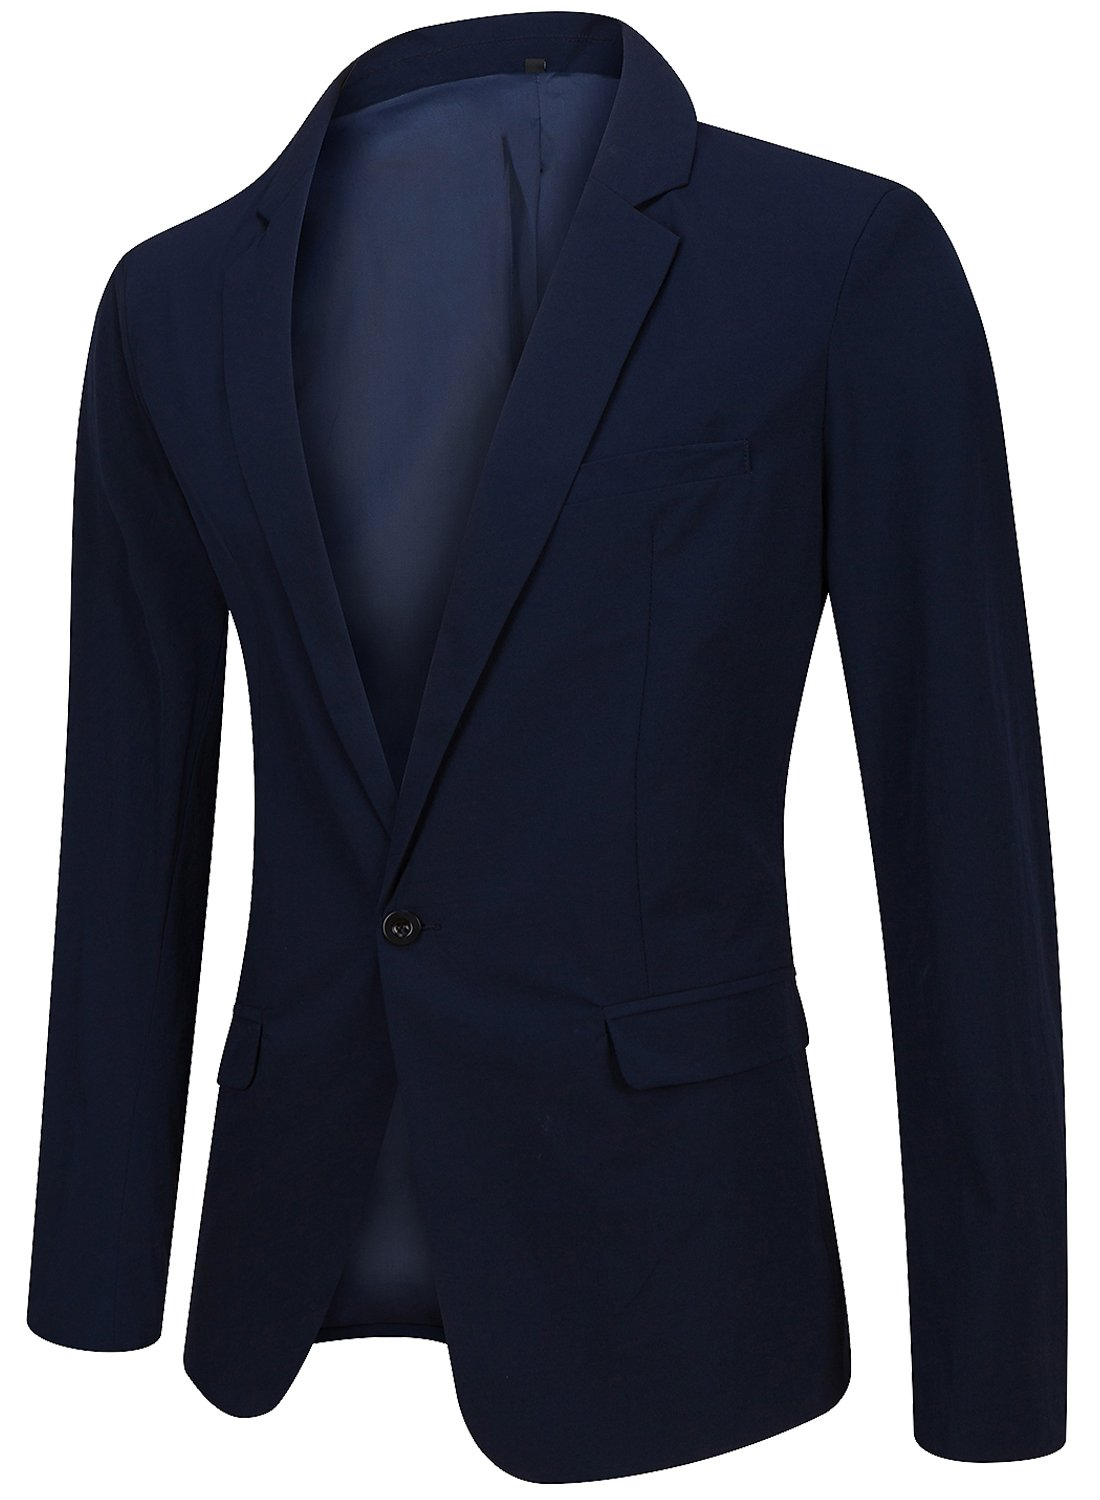 Men's Regular Fit Casual One Button Blazer Jacket Summer Fitted Sports Suit Coat Navy Large